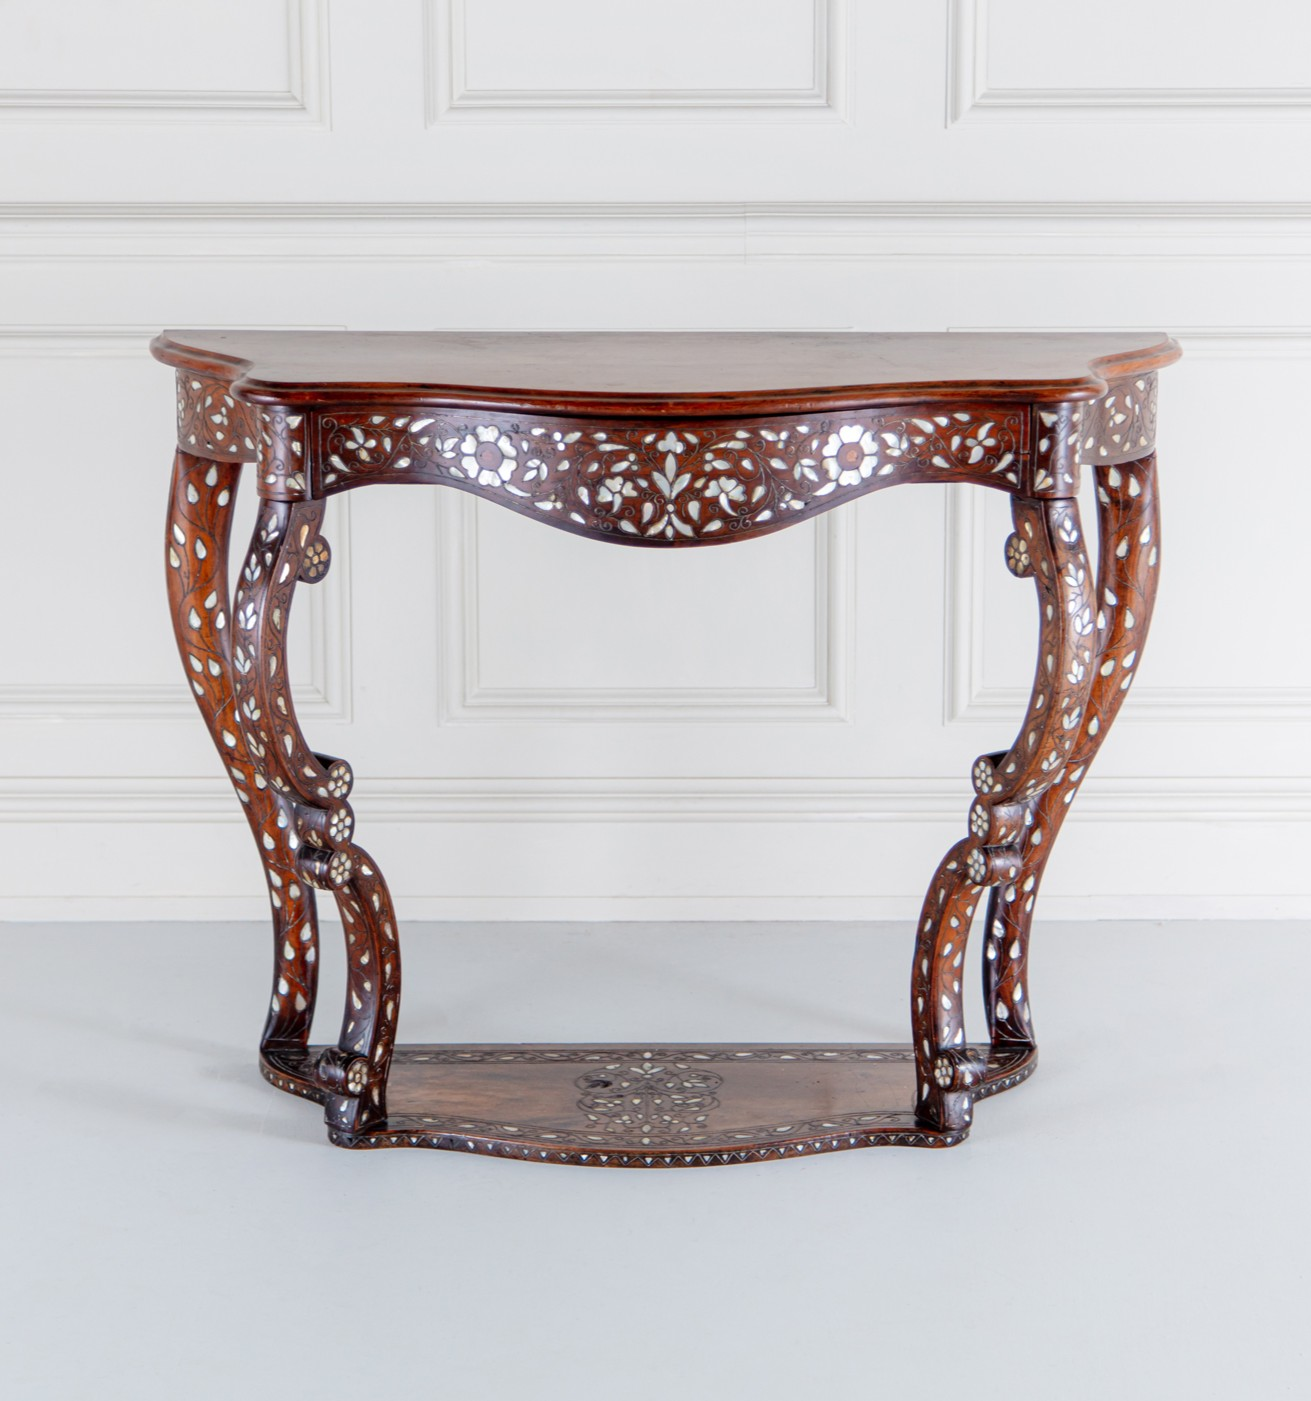 A Moorish mother of pearl and silvered line inlaid serpentine mahogany console table, Circa 1860